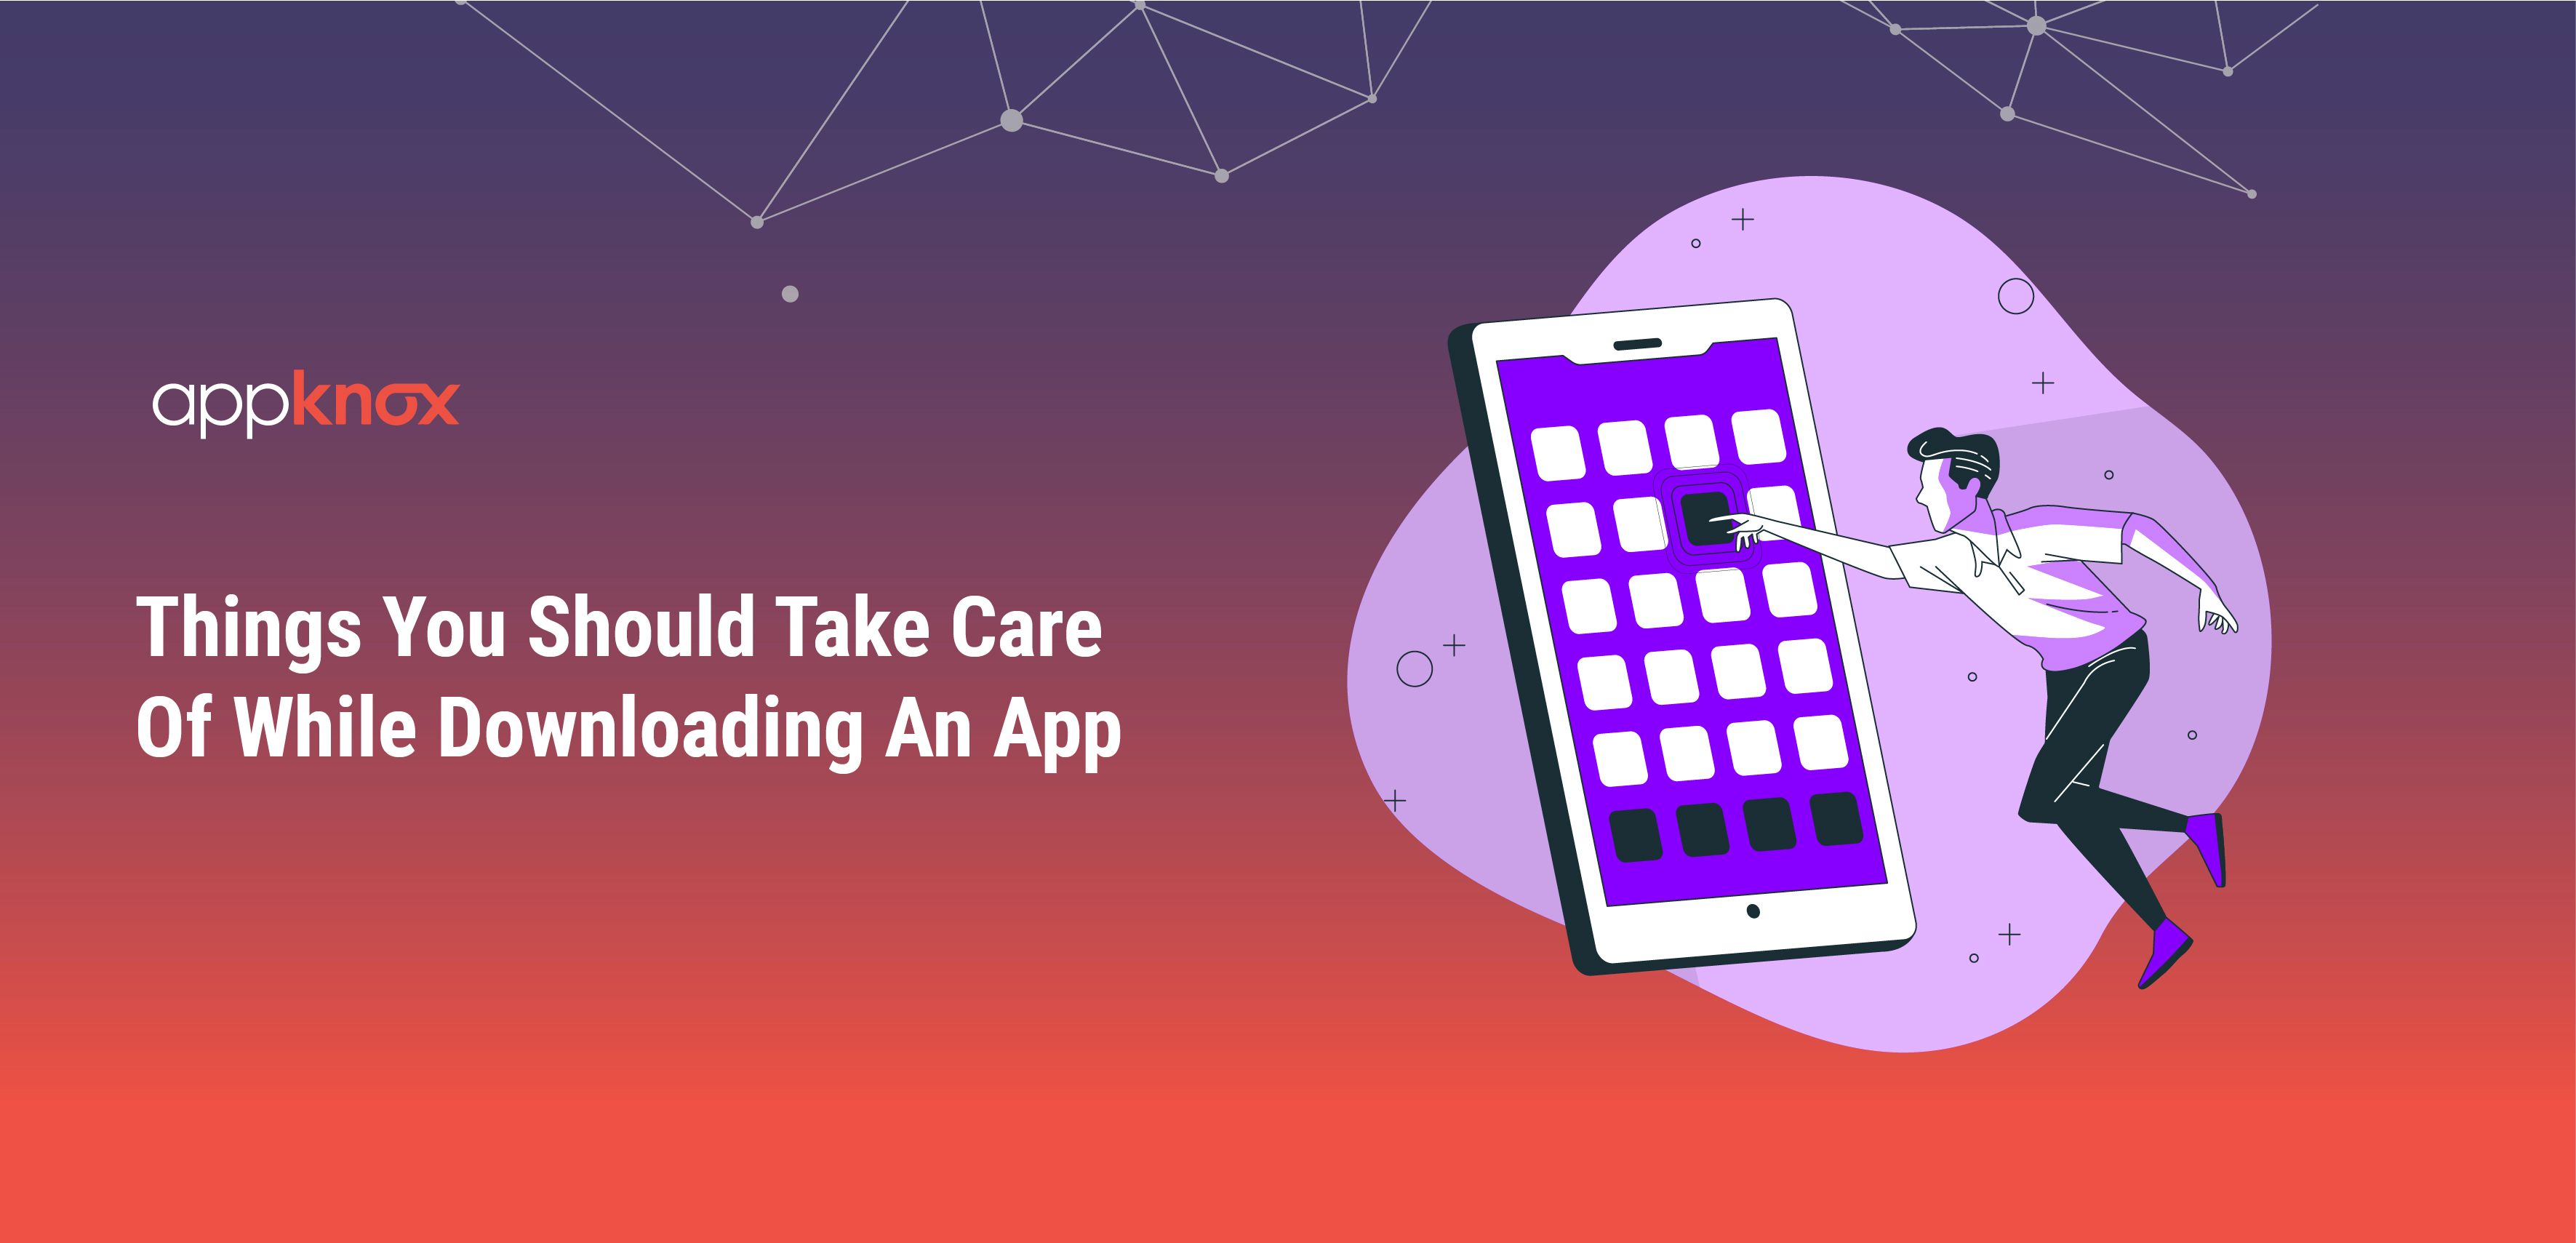 Things You Should Take Care Of While Downloading An App